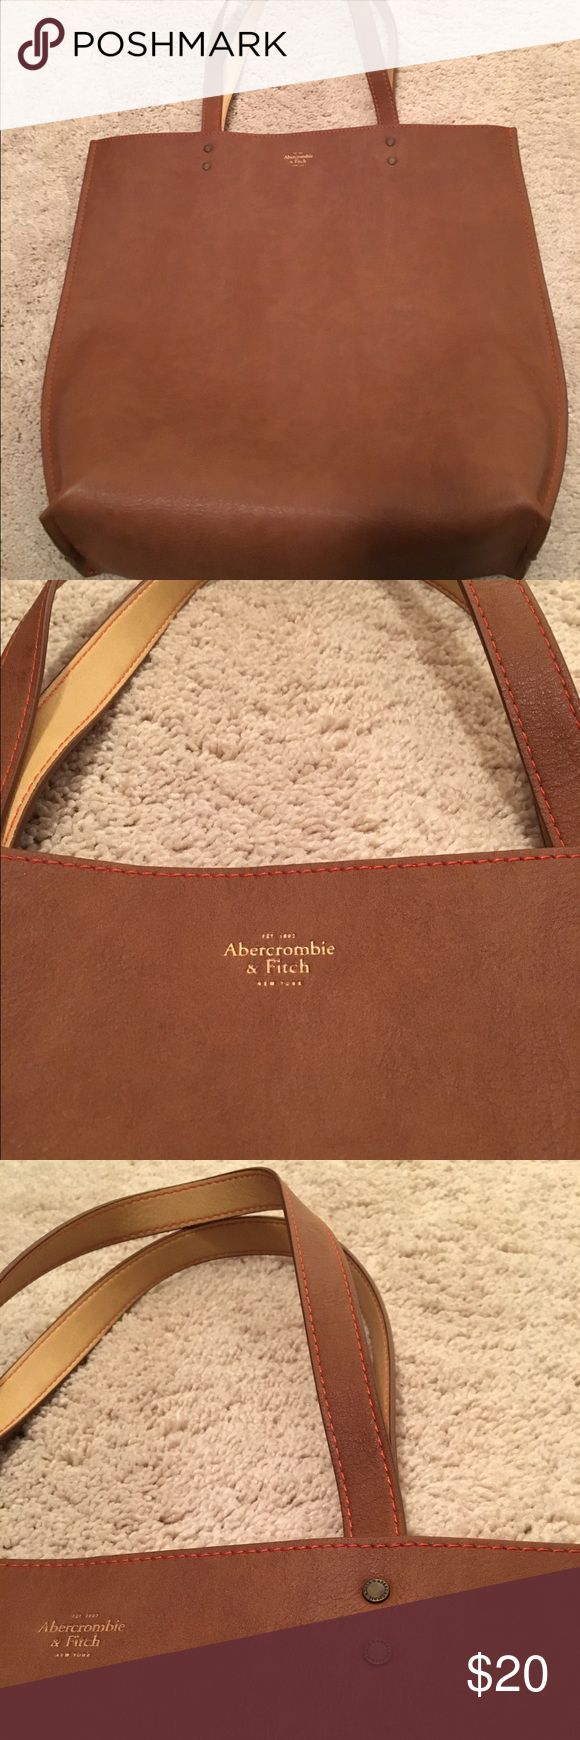 NWOT Abercrombie and fitch faux leather tote Classic faux leather brown tote, Abercrombie and fitch , never used. Abercrombie & Fitch Bags Totes